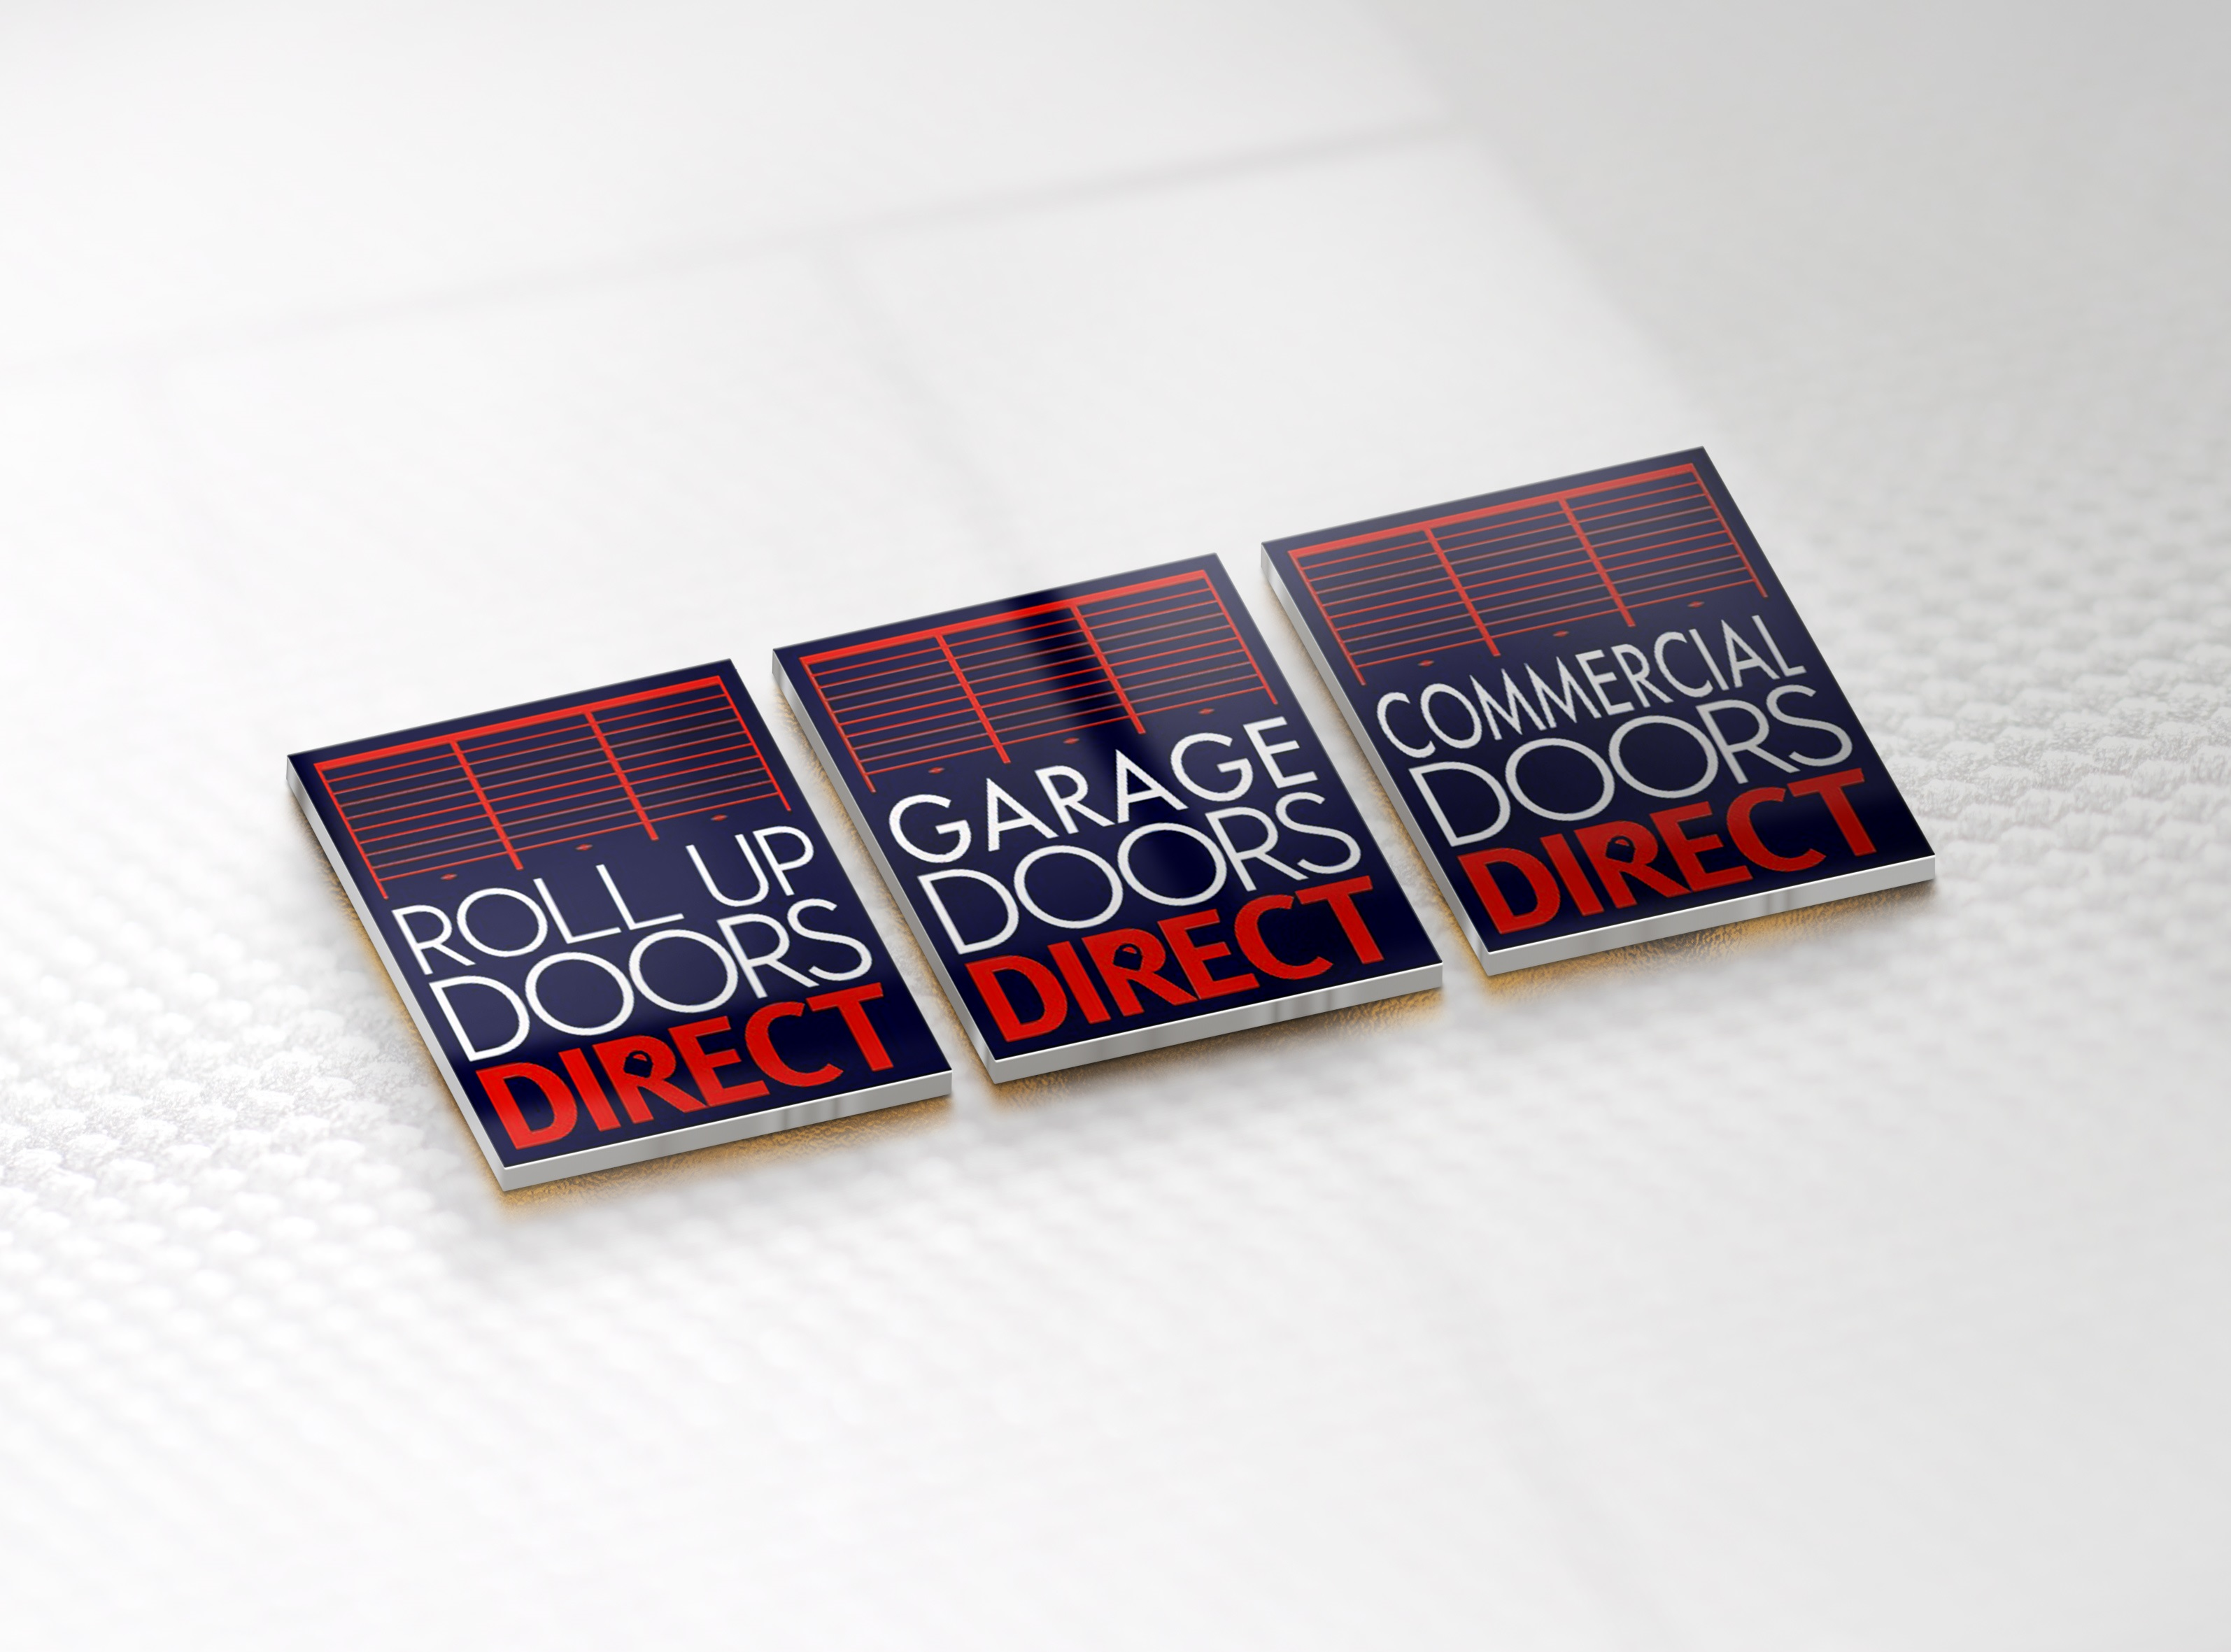 roll up door logo & Buy Doors Direct contact details. Call 1-877-RLDOORS.